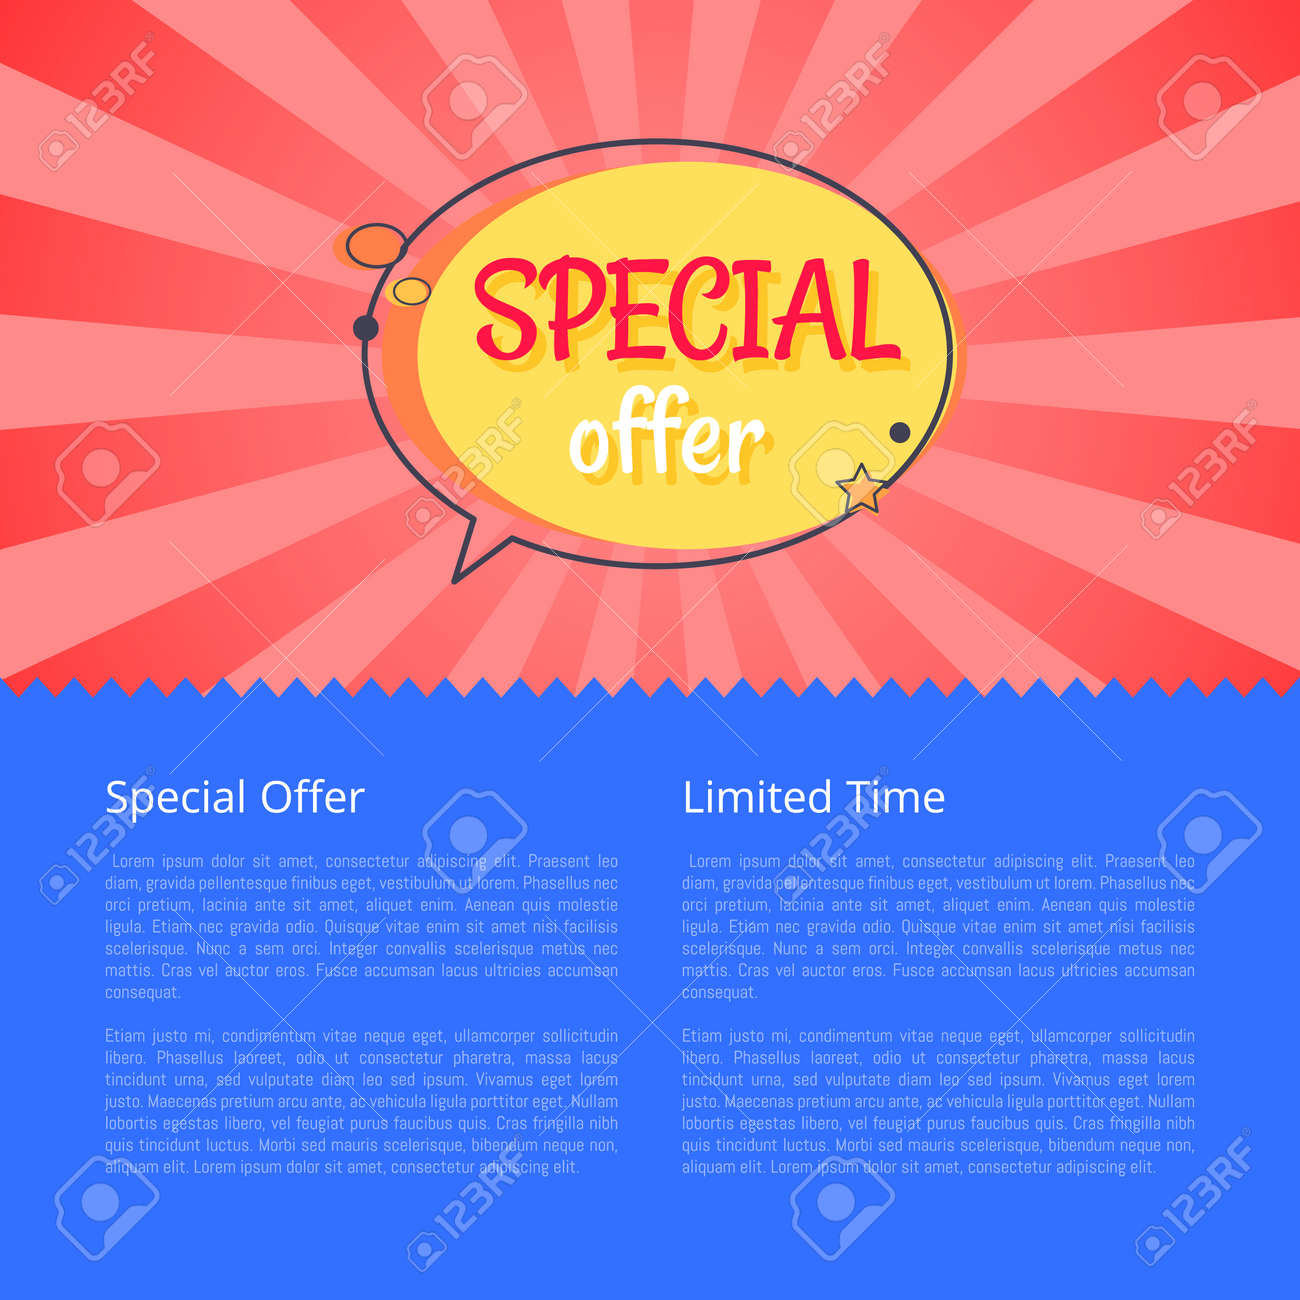 688b17ba9 Limited time special offer sale advertisement promotional poster discounts  info about reducement of prices for some